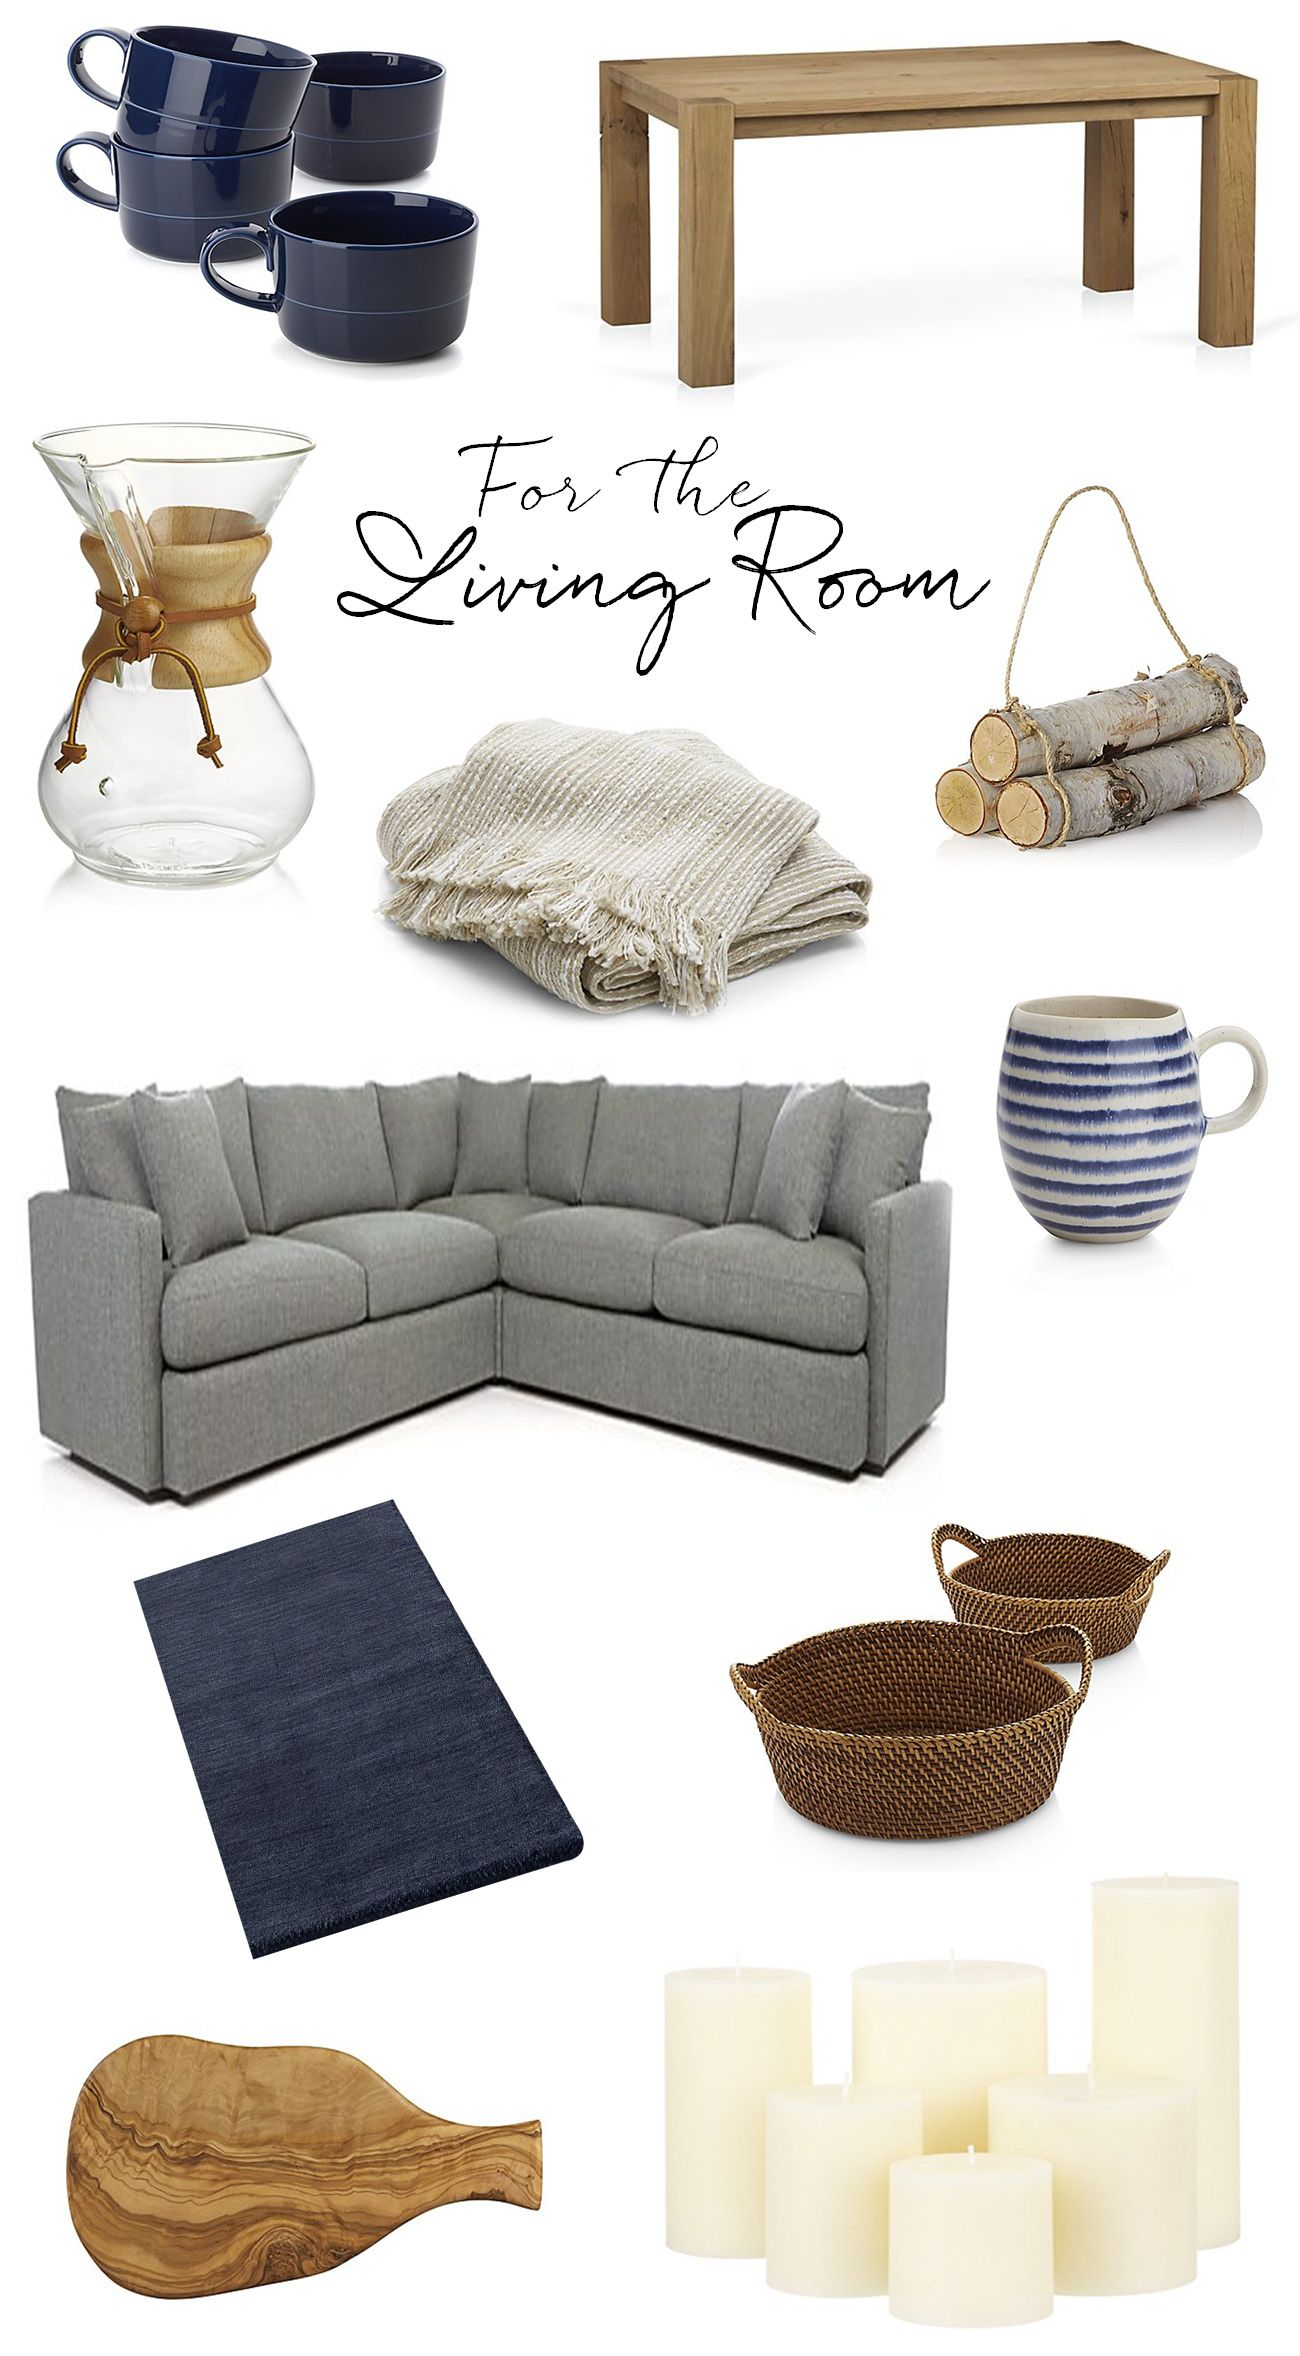 Bring hygge into your home with crate and barrel scandinavian